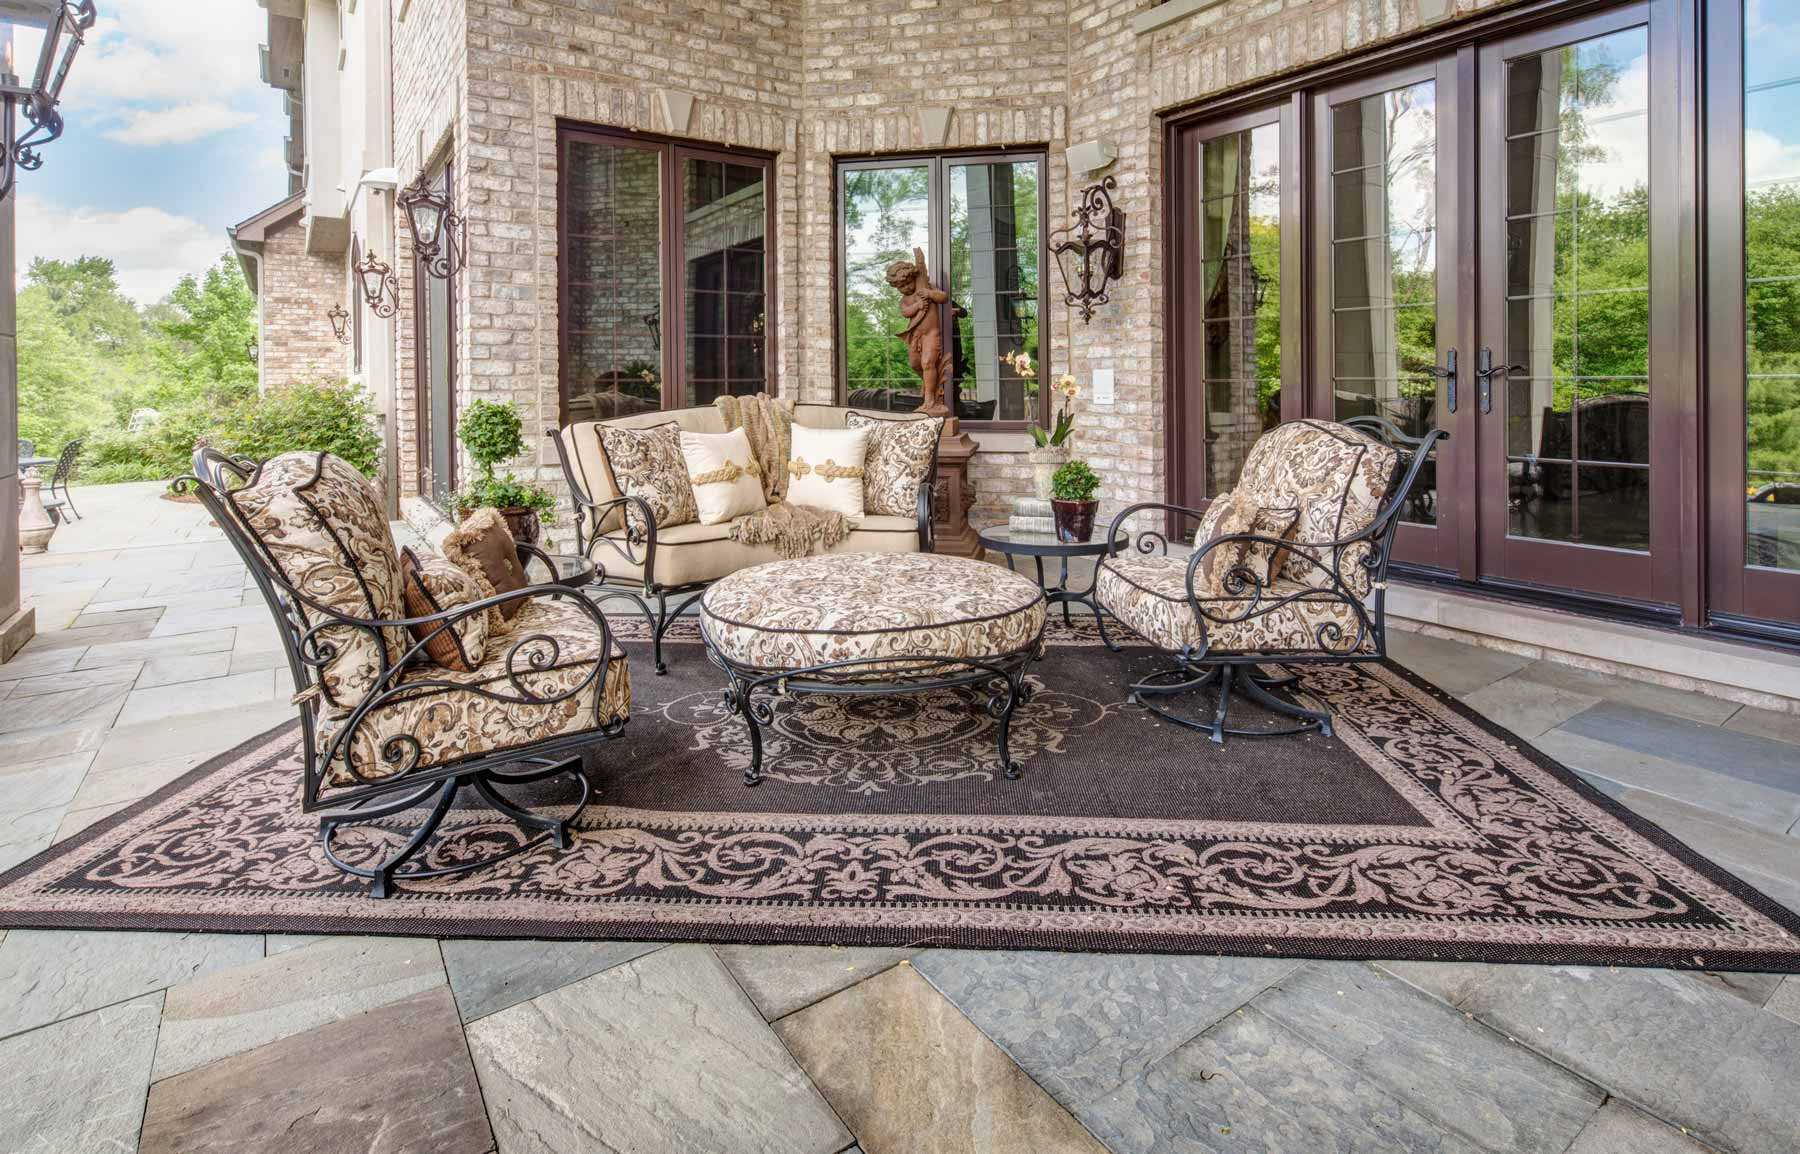 luxury outdoor furniture linly designs rh linlydesigns com luxury patio furniture las vegas luxury patio furniture sets